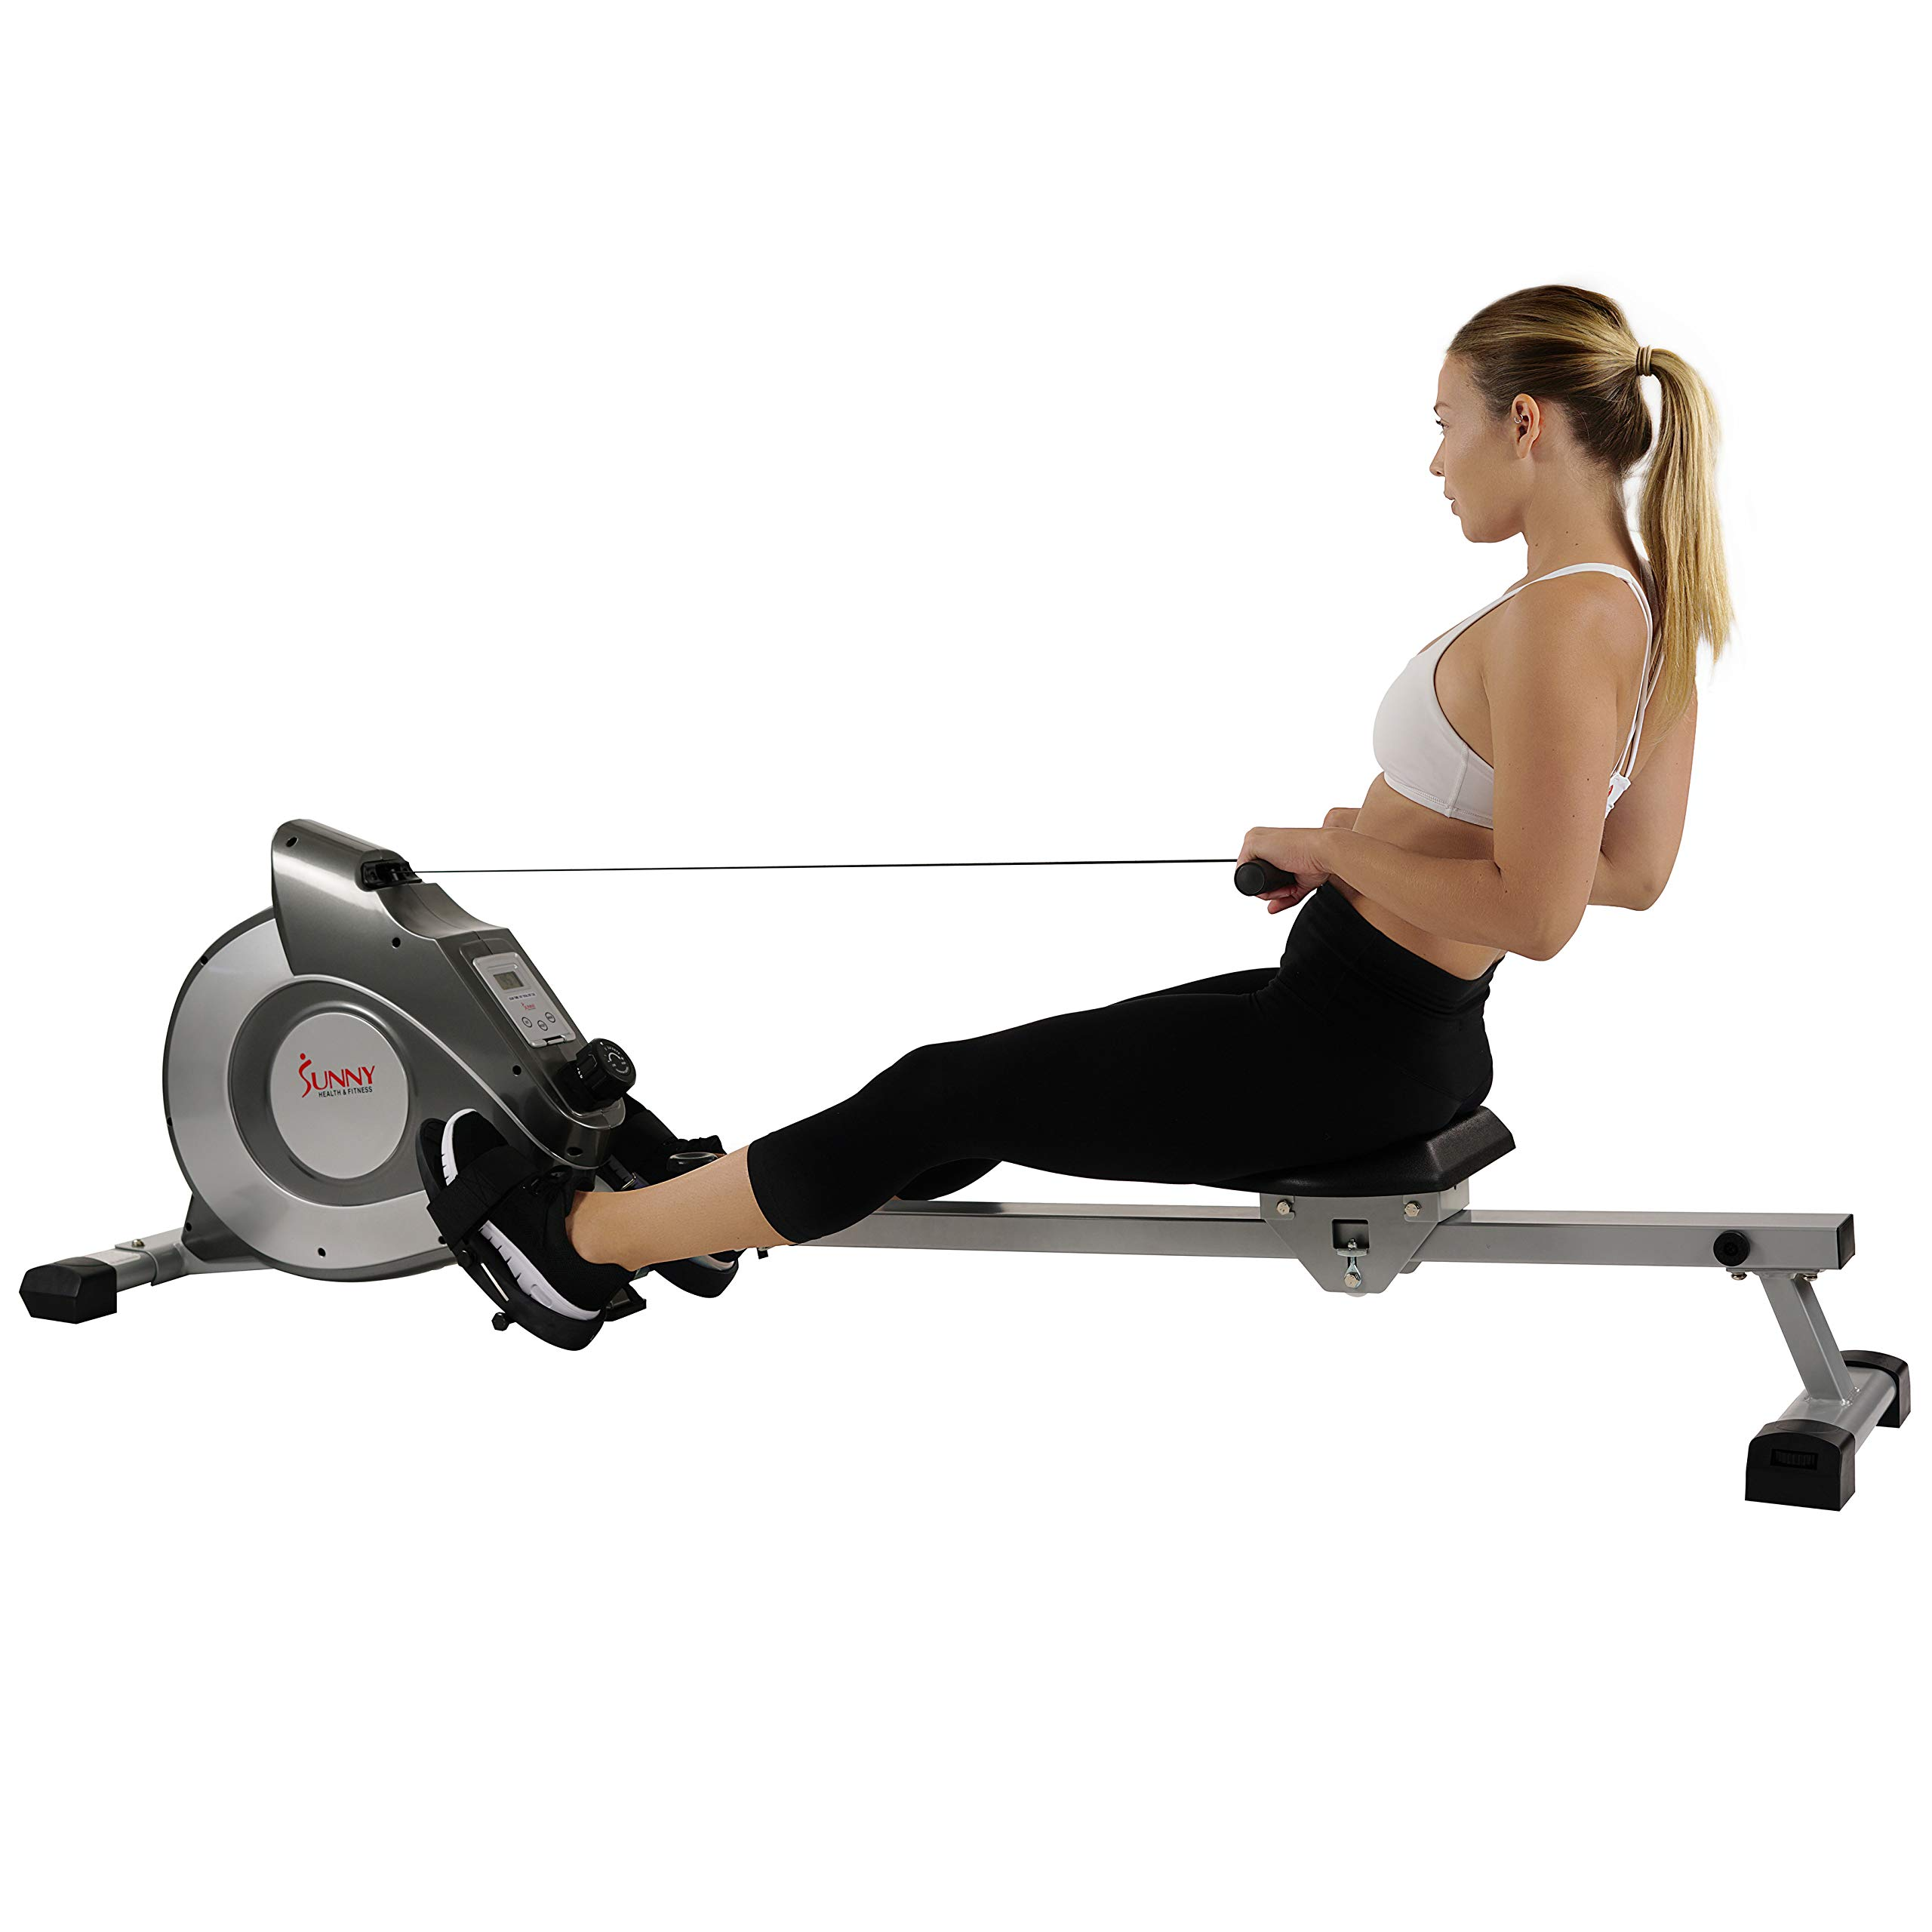 Sunny Health & Fitness Magnetic Rowing Machine with LCD Monitor by SF-RW5515 by Sunny Health & Fitness (Image #7)